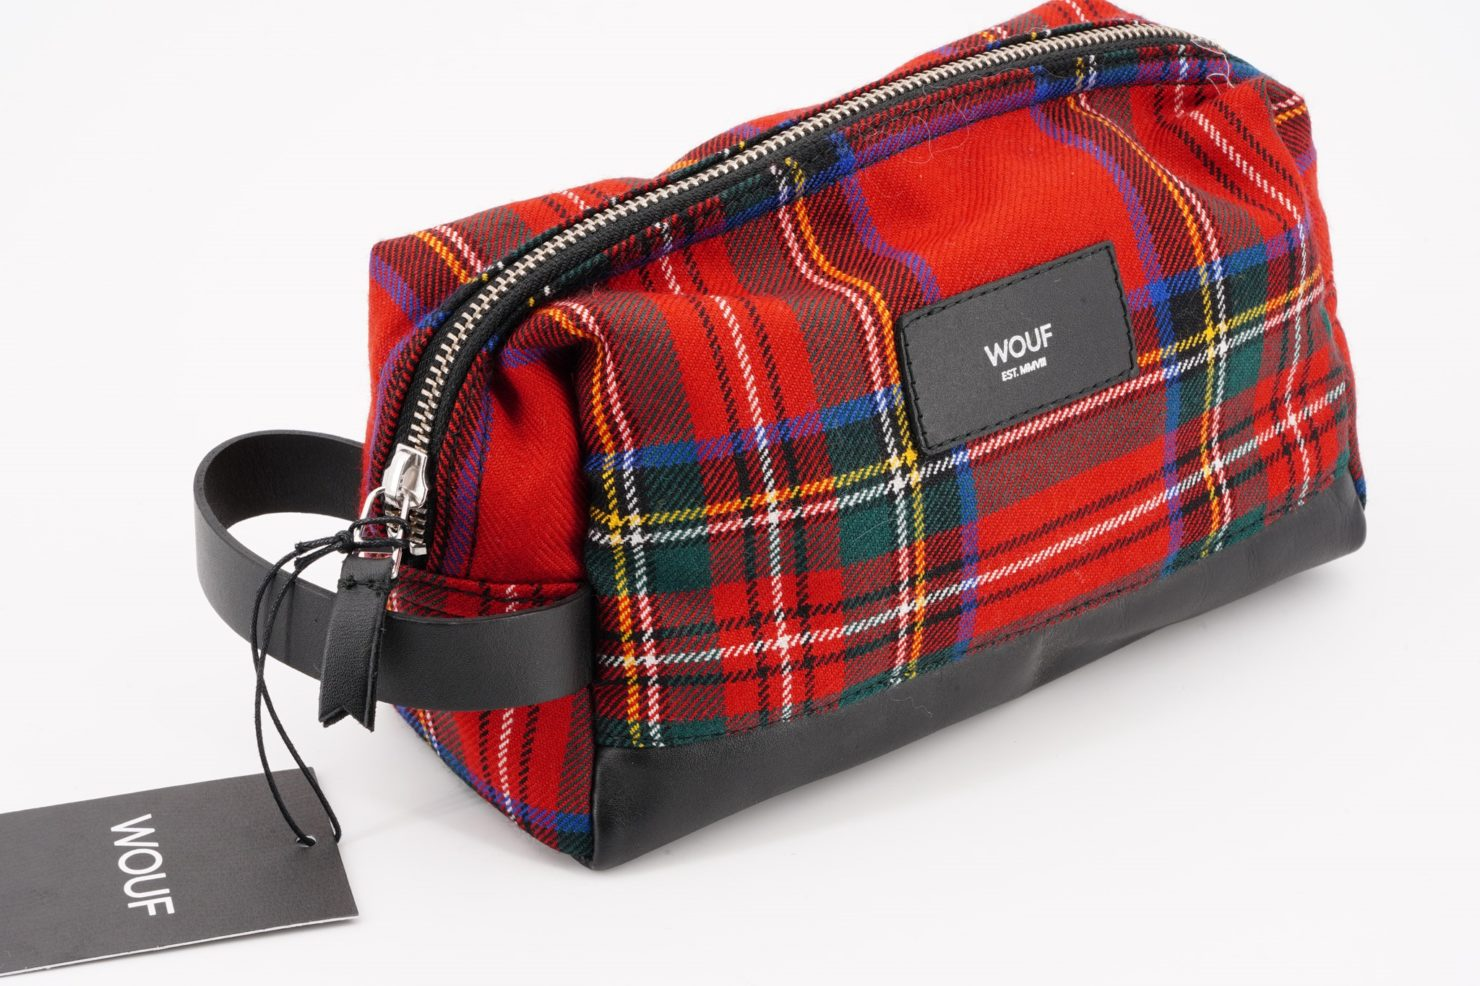 NAVY SCOTLAND TRAVEL CASE - WOUF